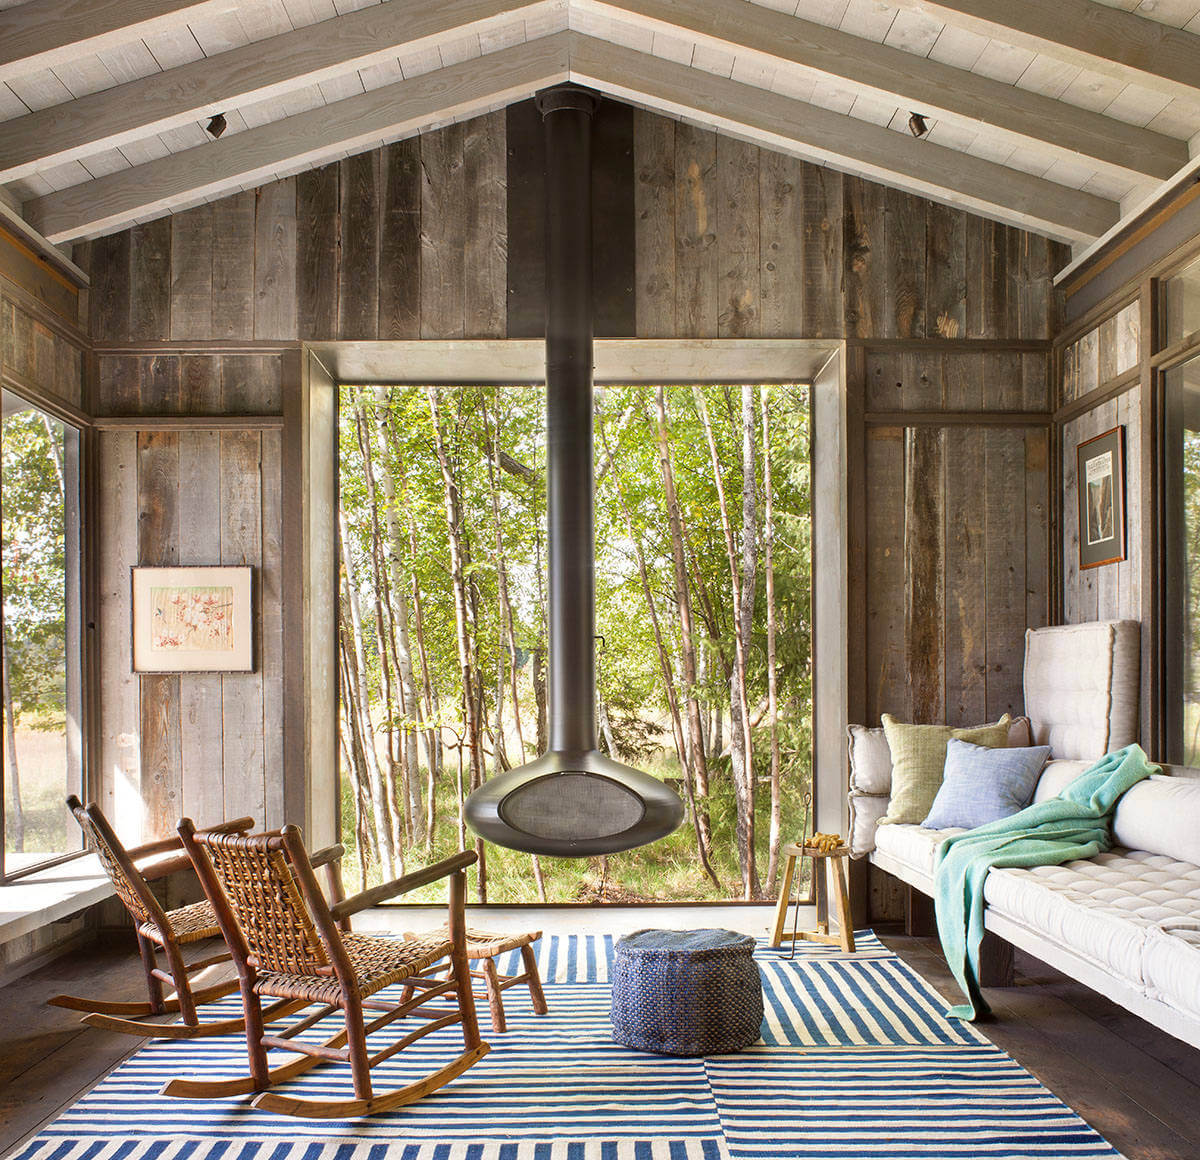 Northshore Cabin By Pearson Design Group « HomeAdore